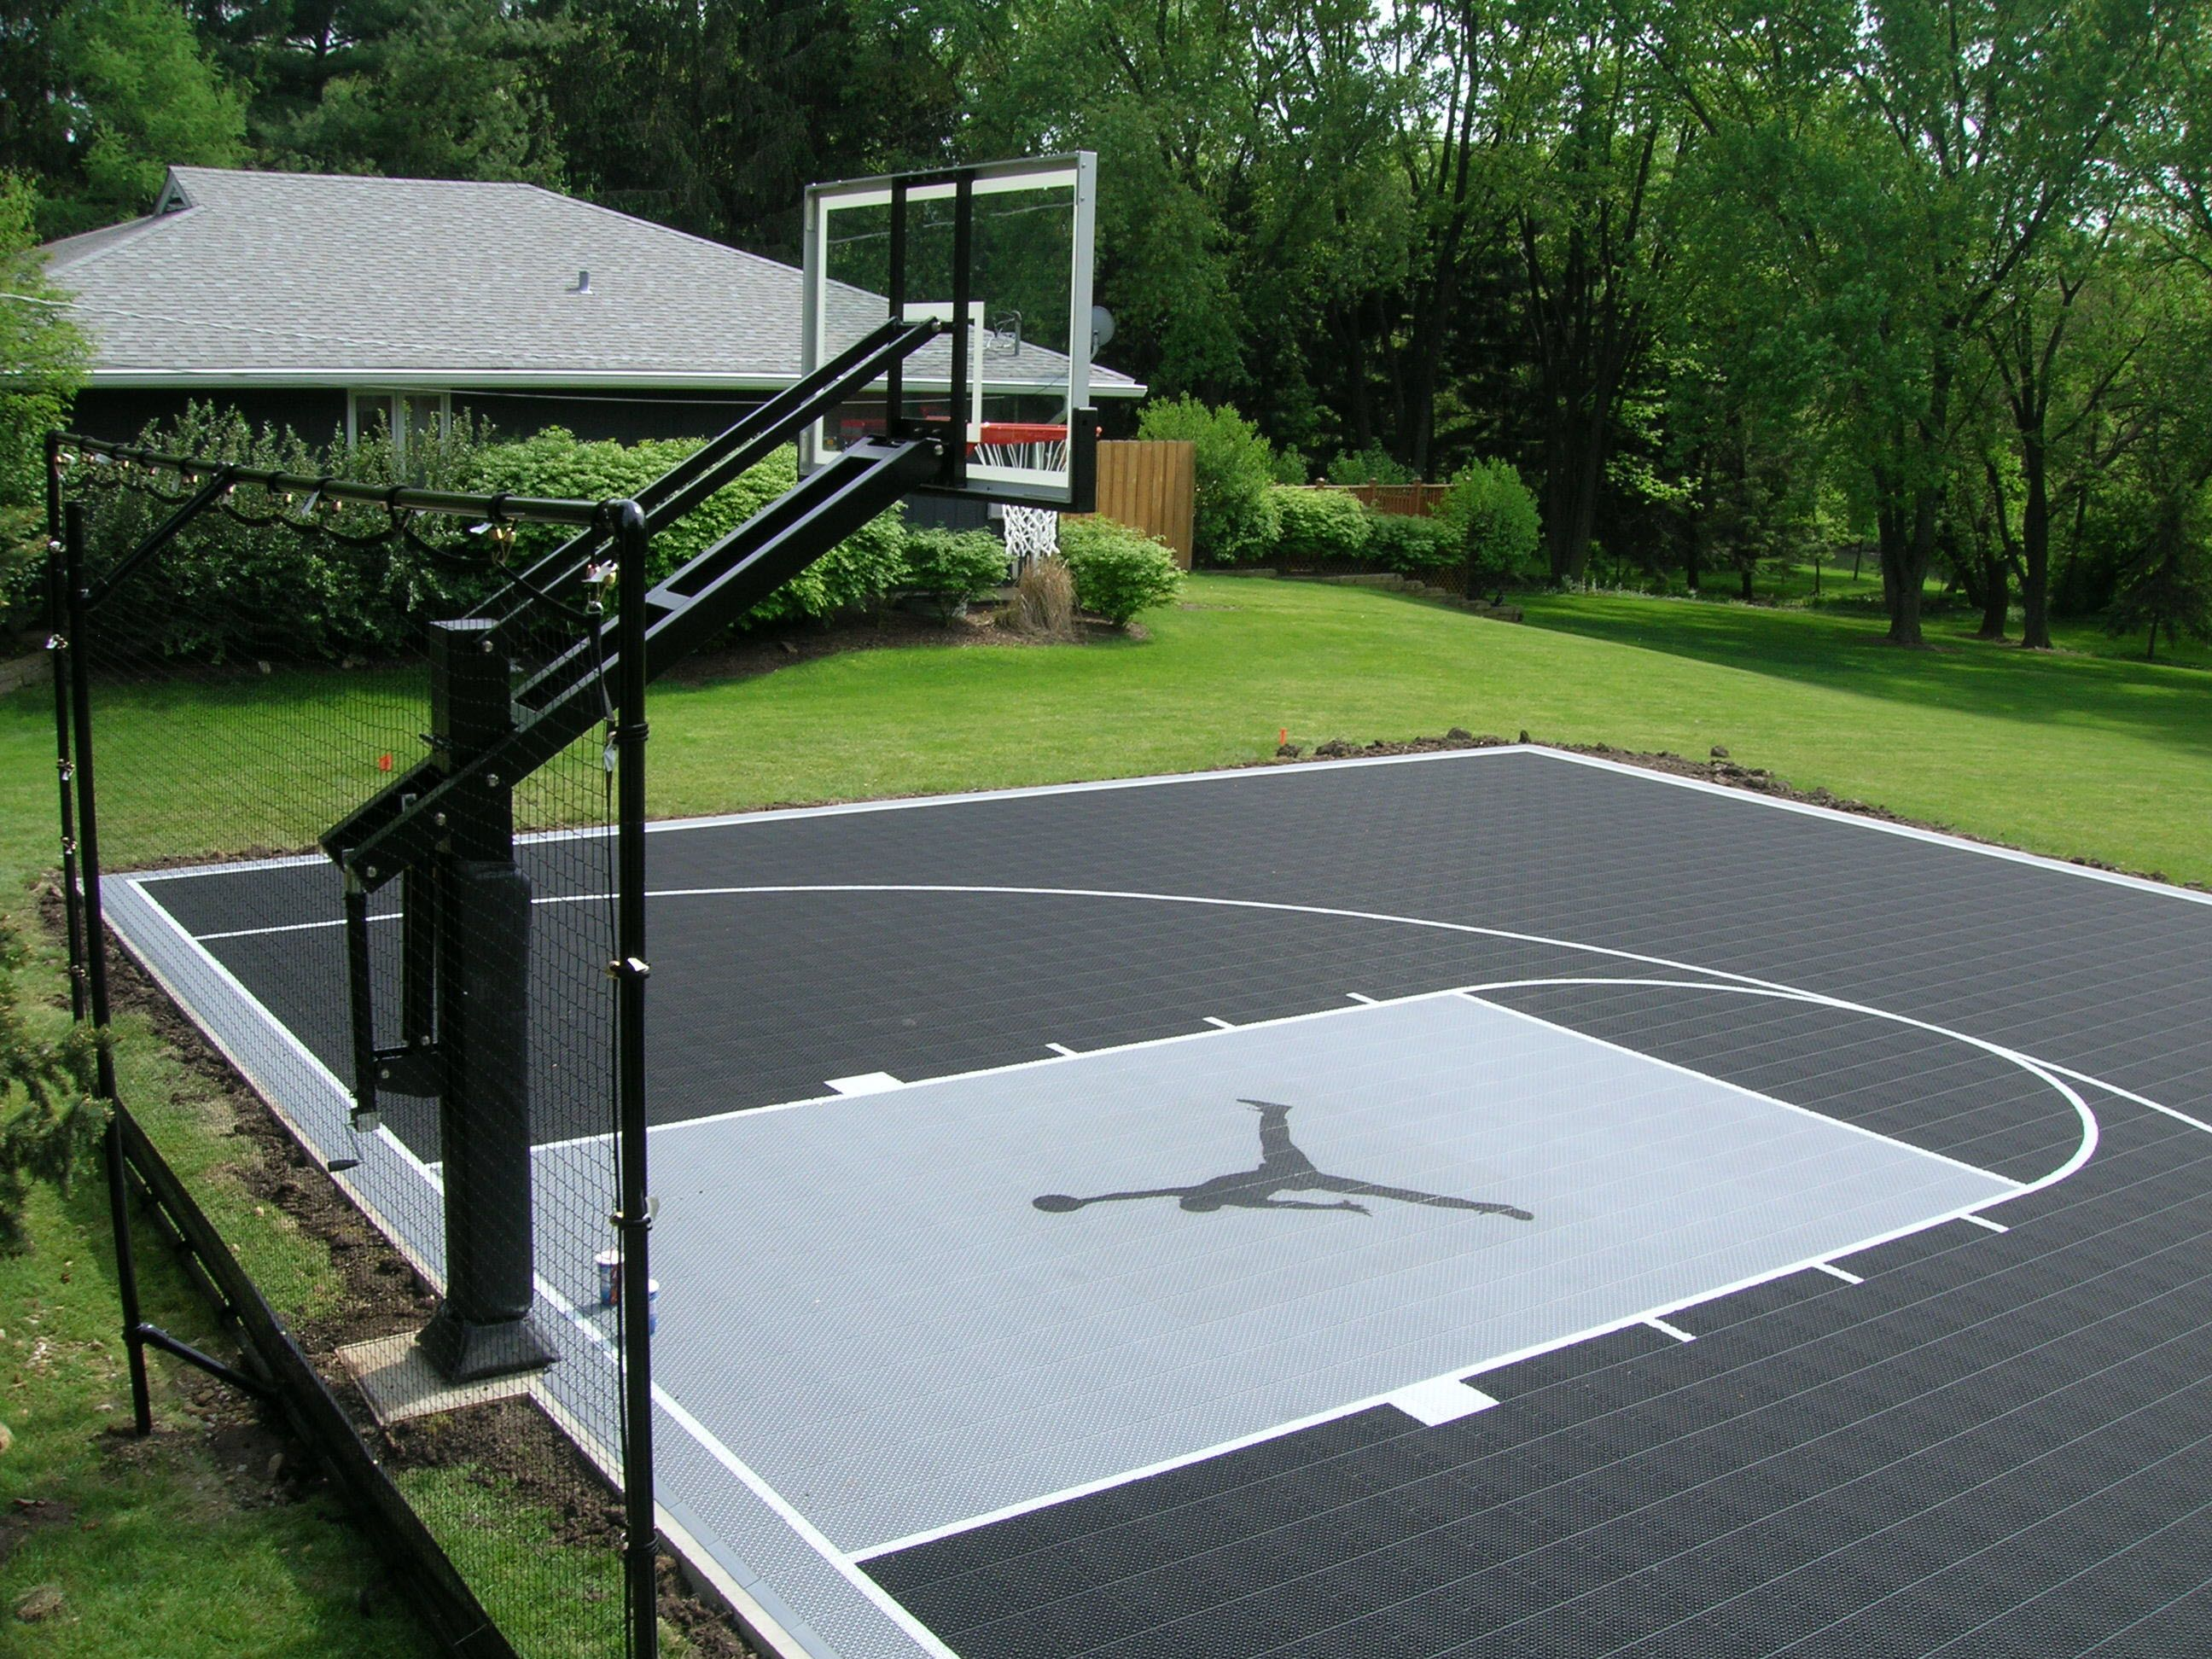 Basketball Court Competitor Basketball Court 30 X 45